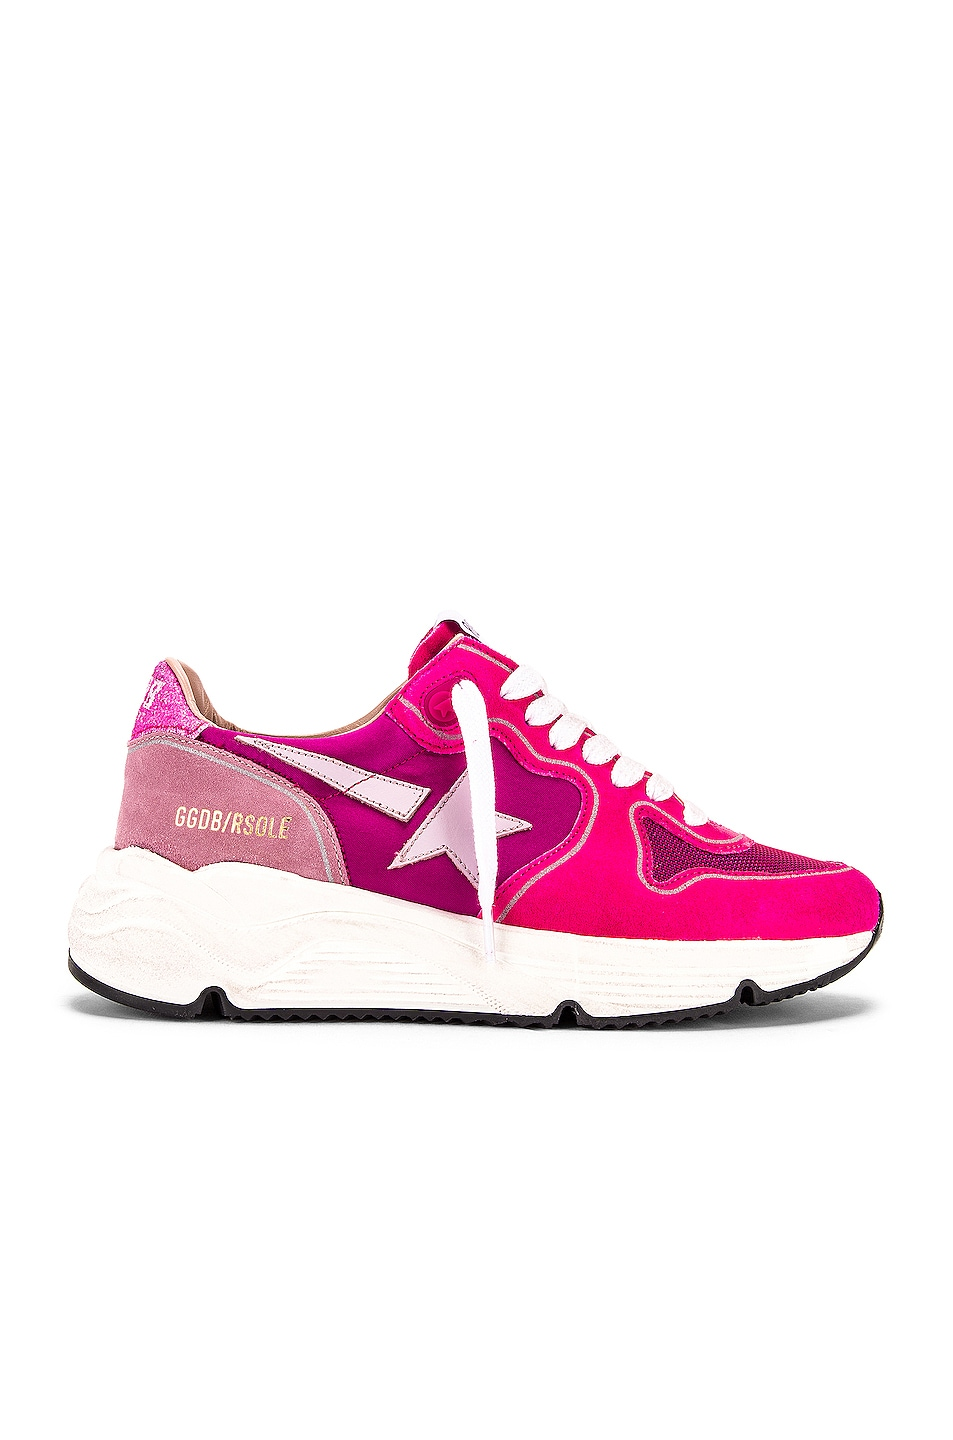 Image 1 of Golden Goose Running Sole Sneaker in Fuchsia Suede, Pink Star & Glitter